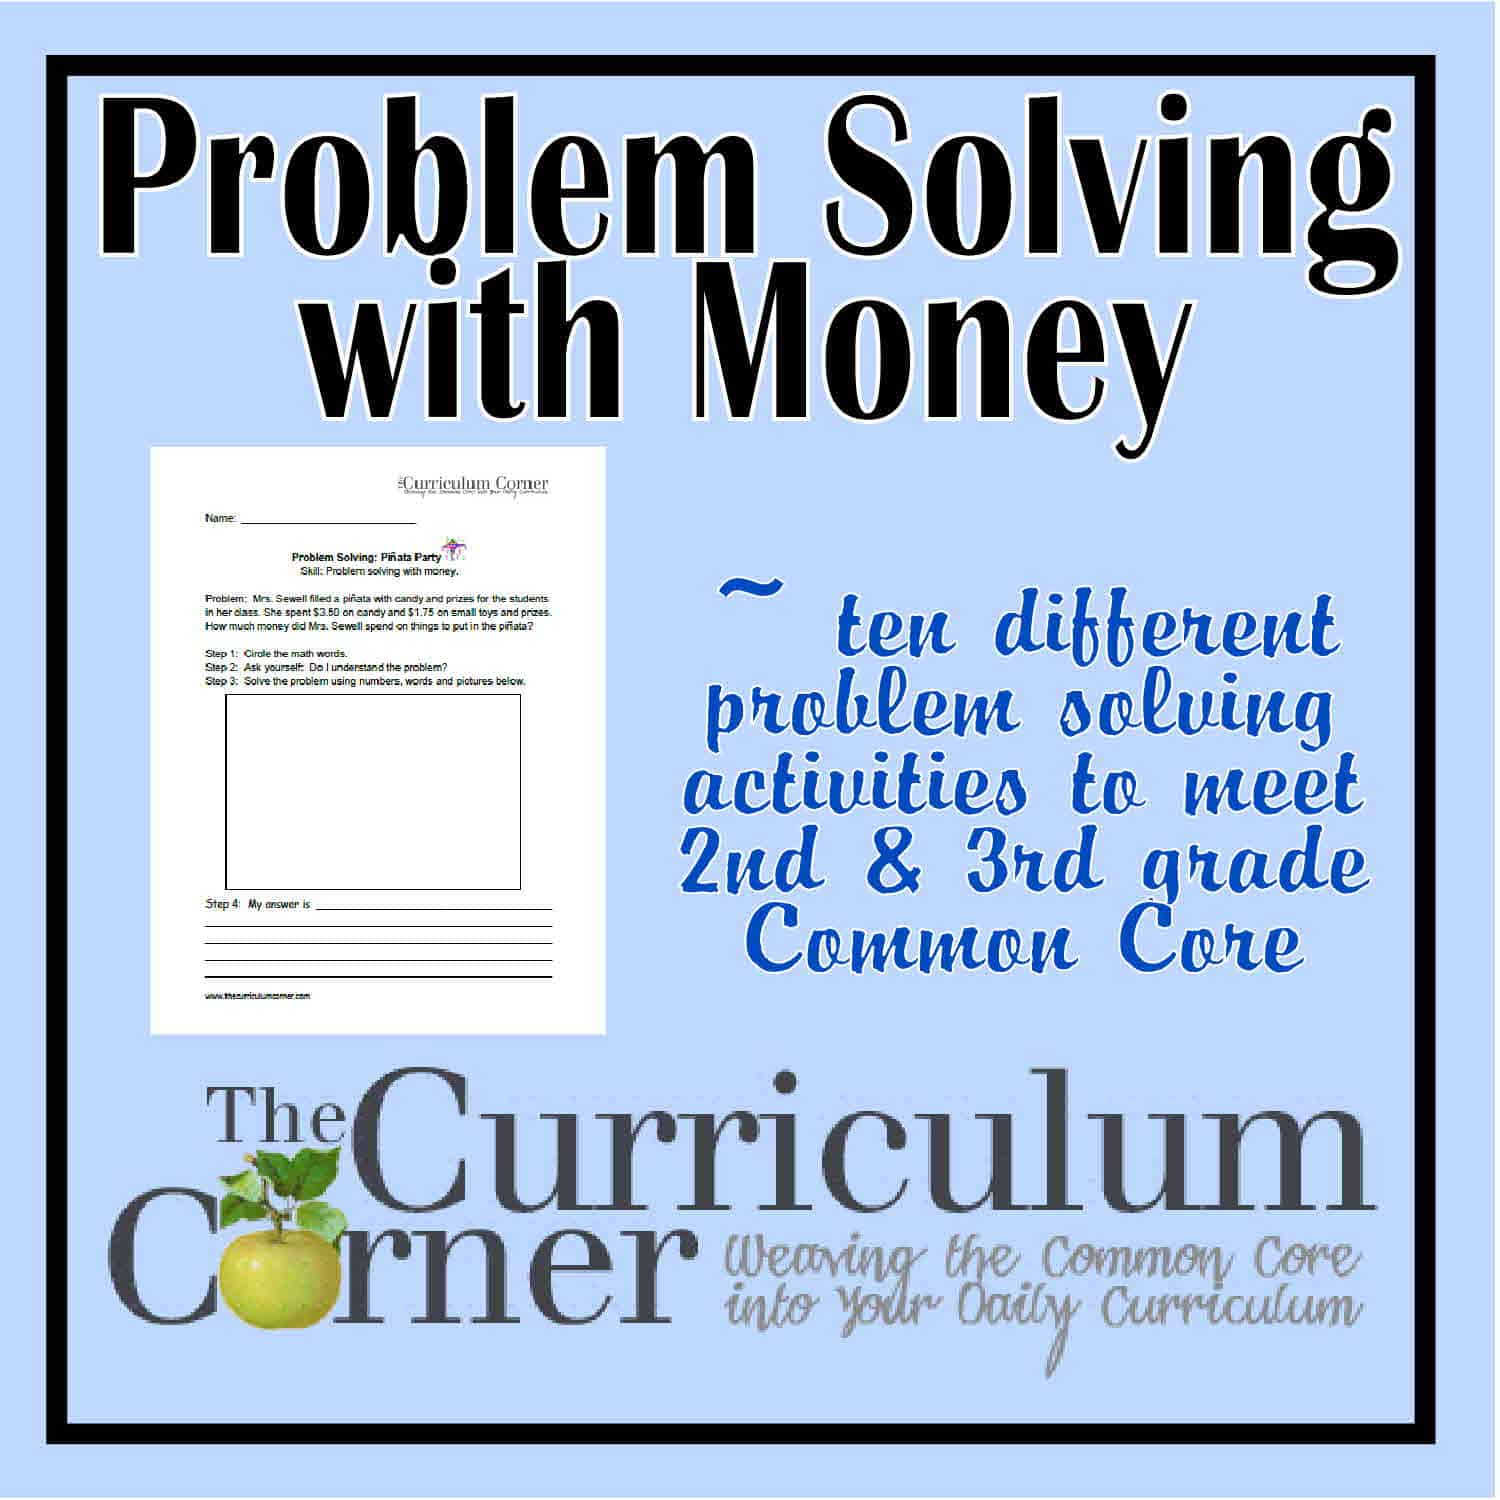 Problem Solving Archives - Page 2 of 2 - The Curriculum Corner 123